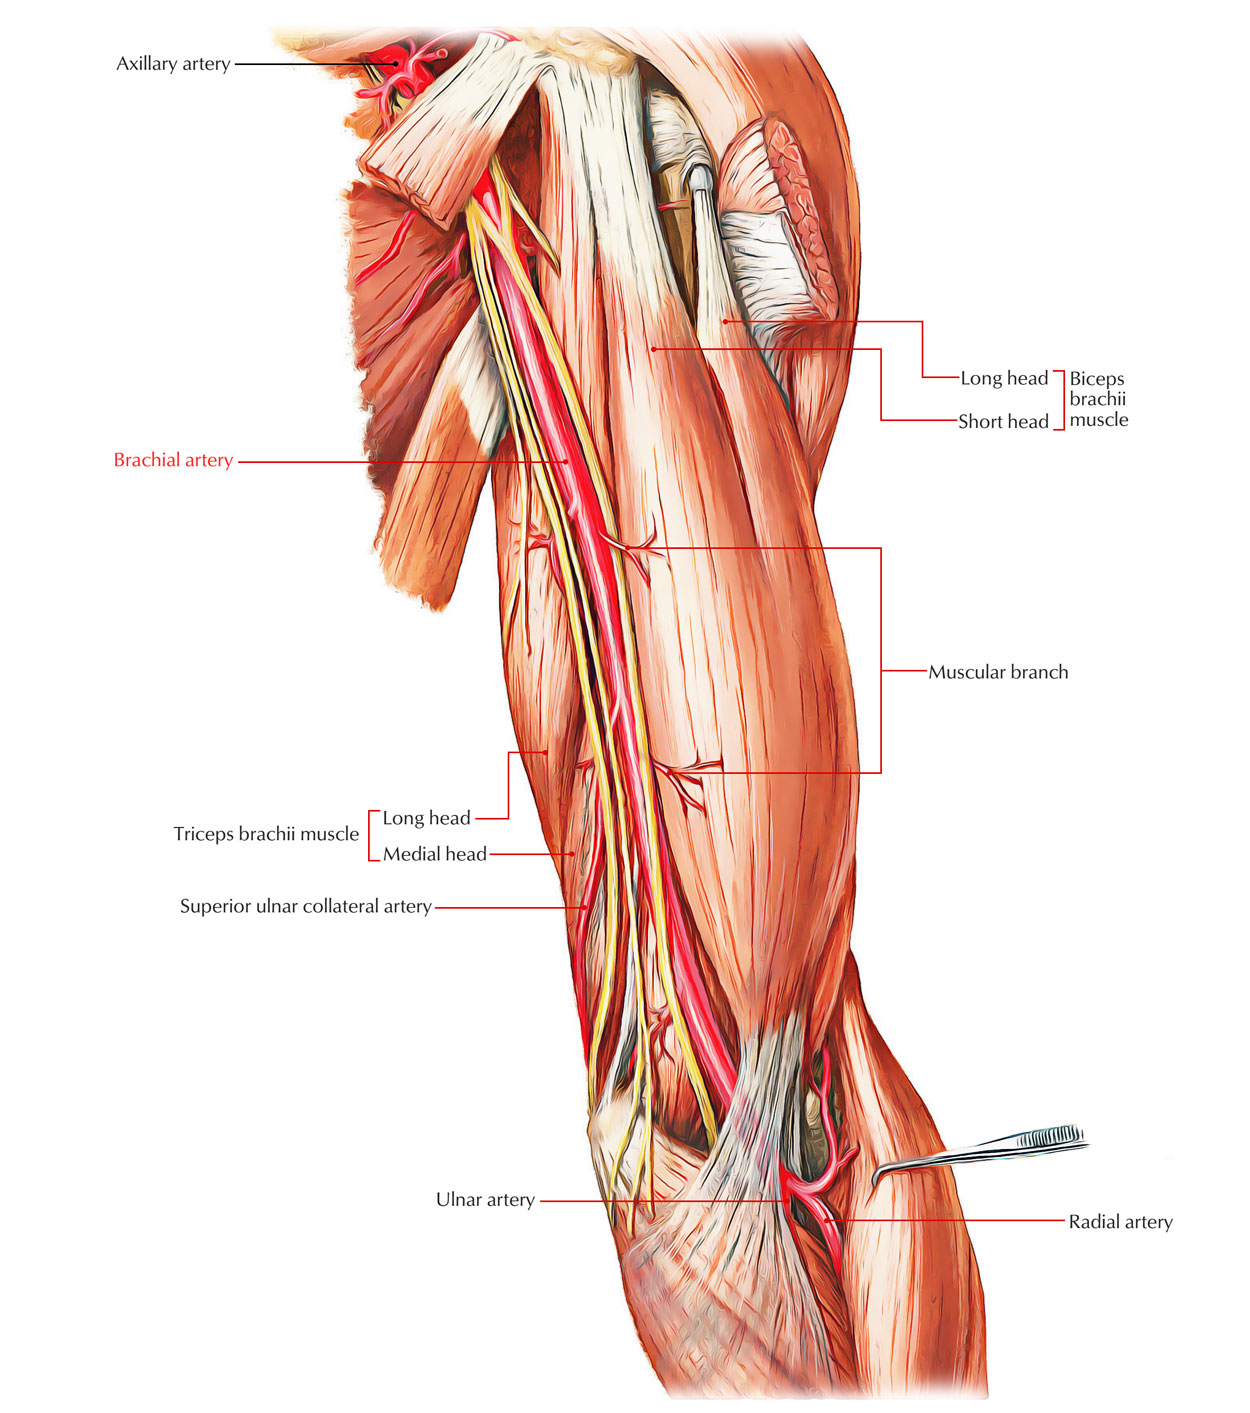 hight resolution of arteries of the upper limb brachial artery